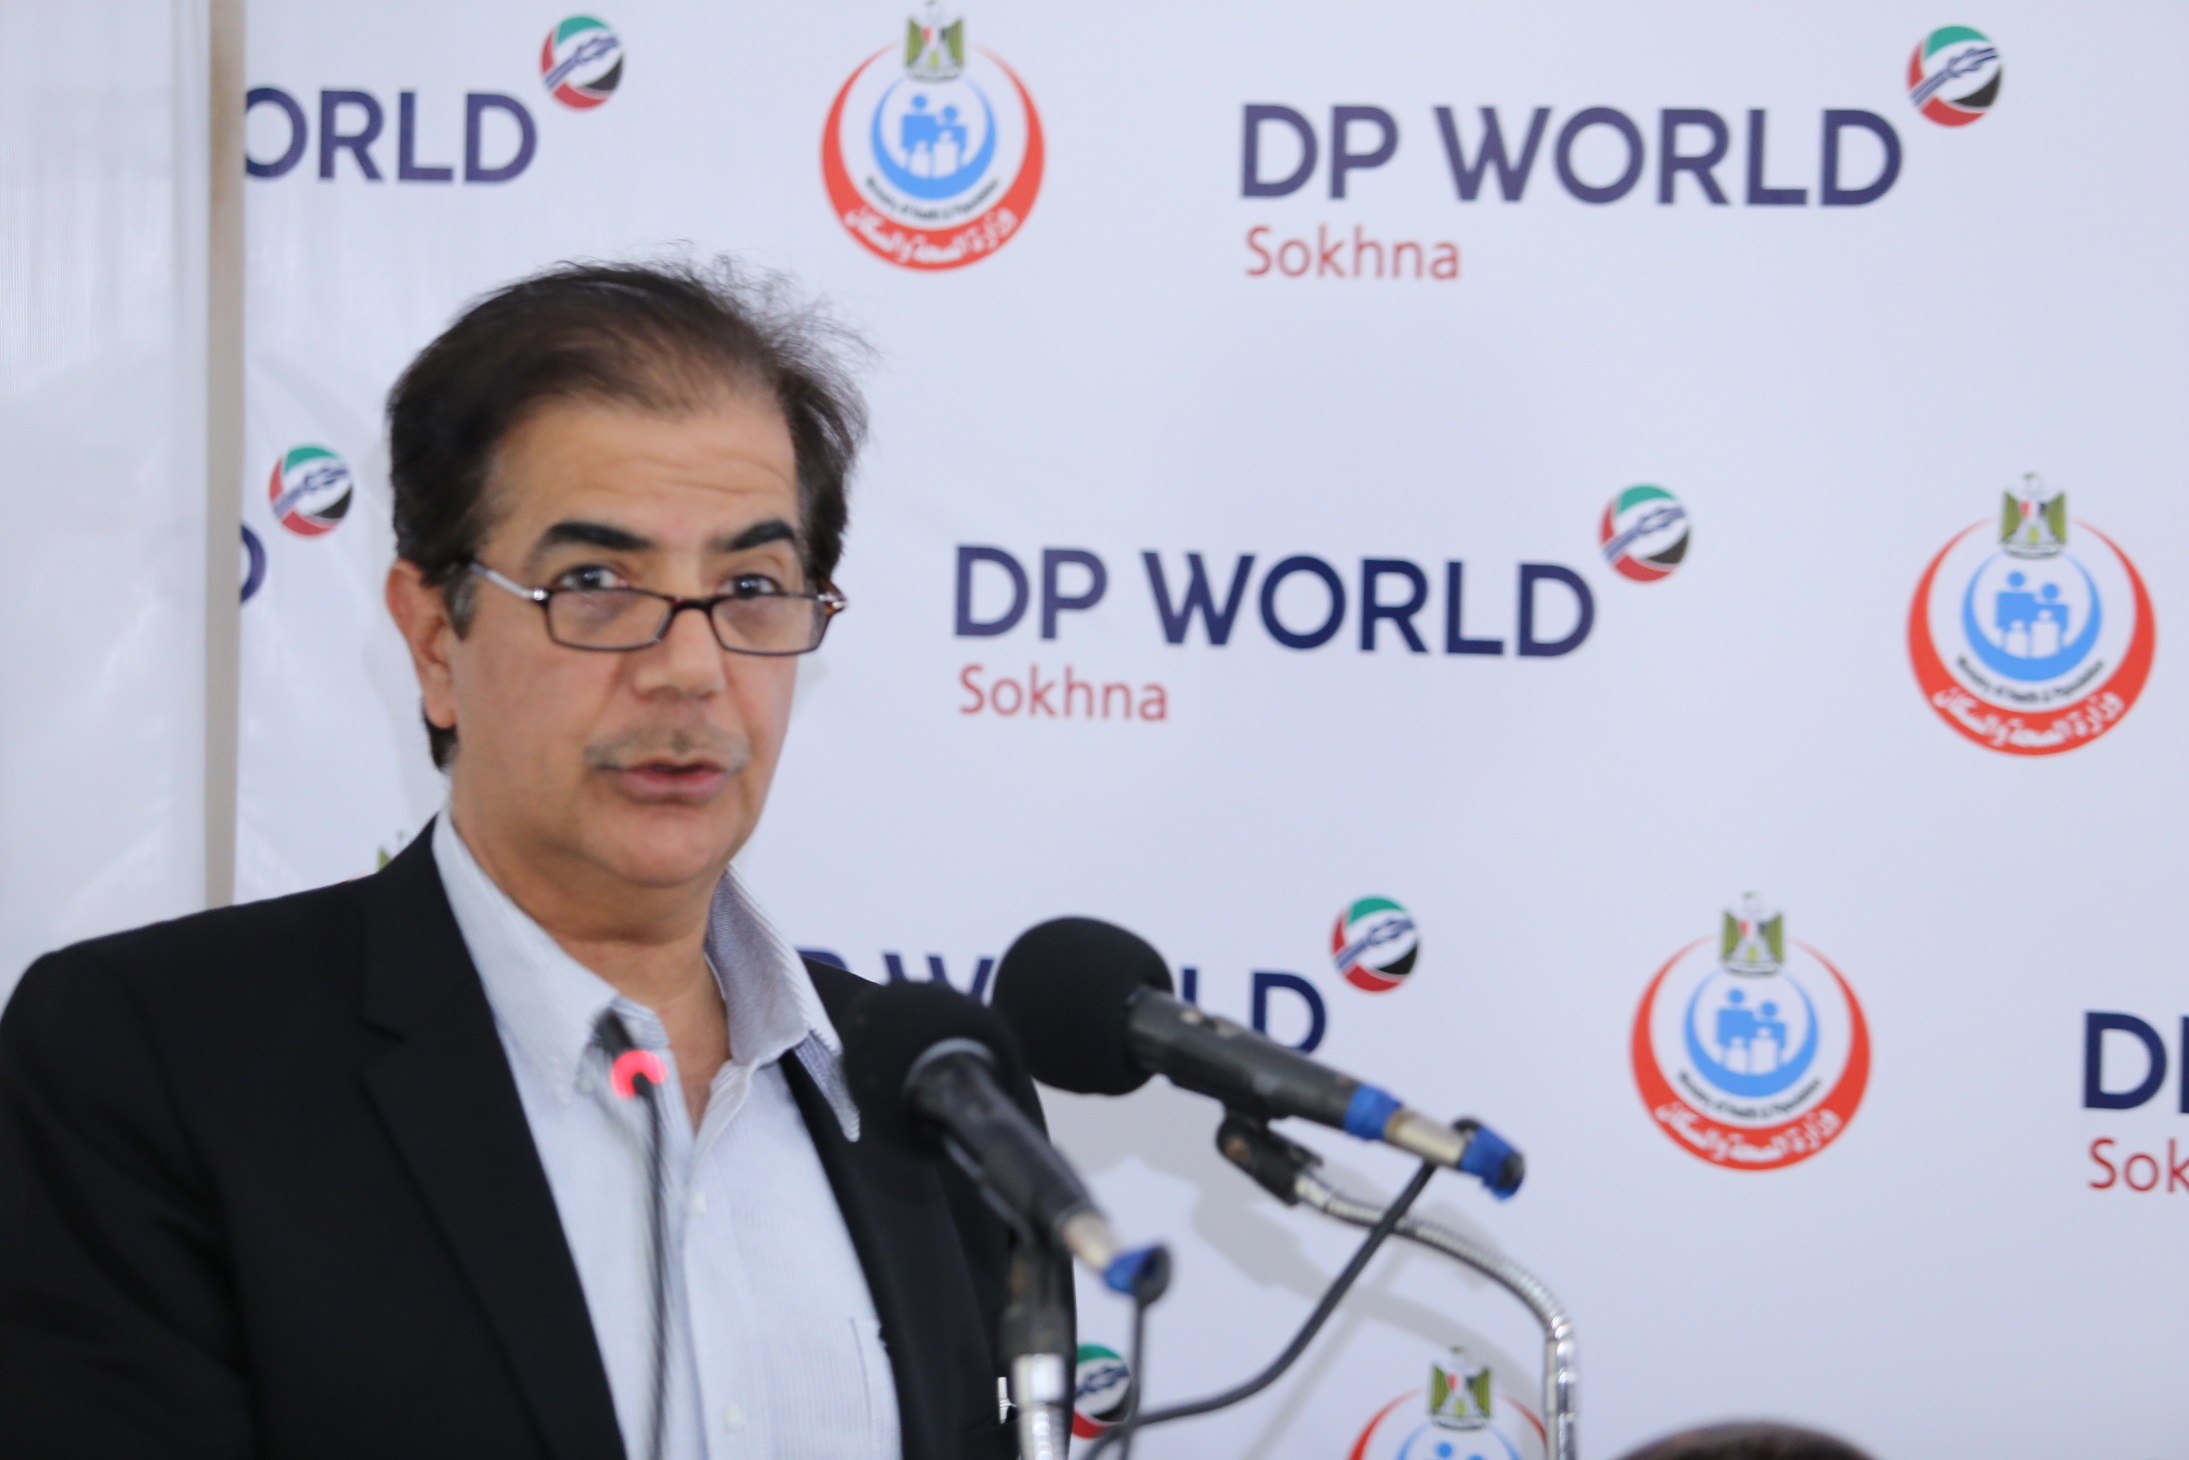 Senior vice president and managing director of DP World Middle East and Africa Suhail Al Banna (Photo Handout to DNE)